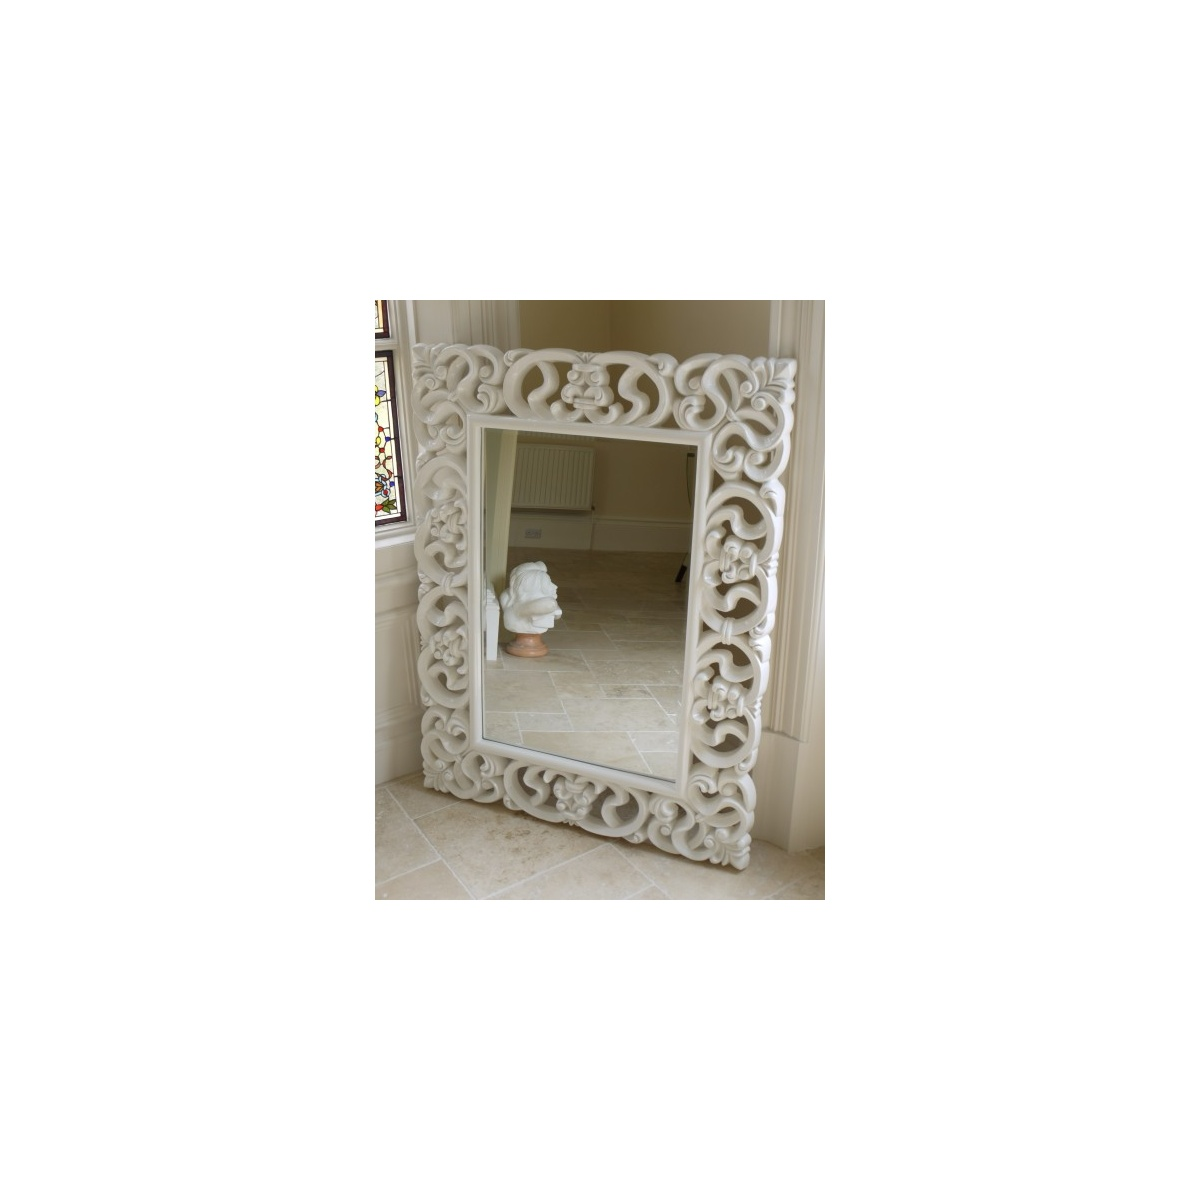 Buy Large French White Ornate Wall Mirror Swanky Interiors